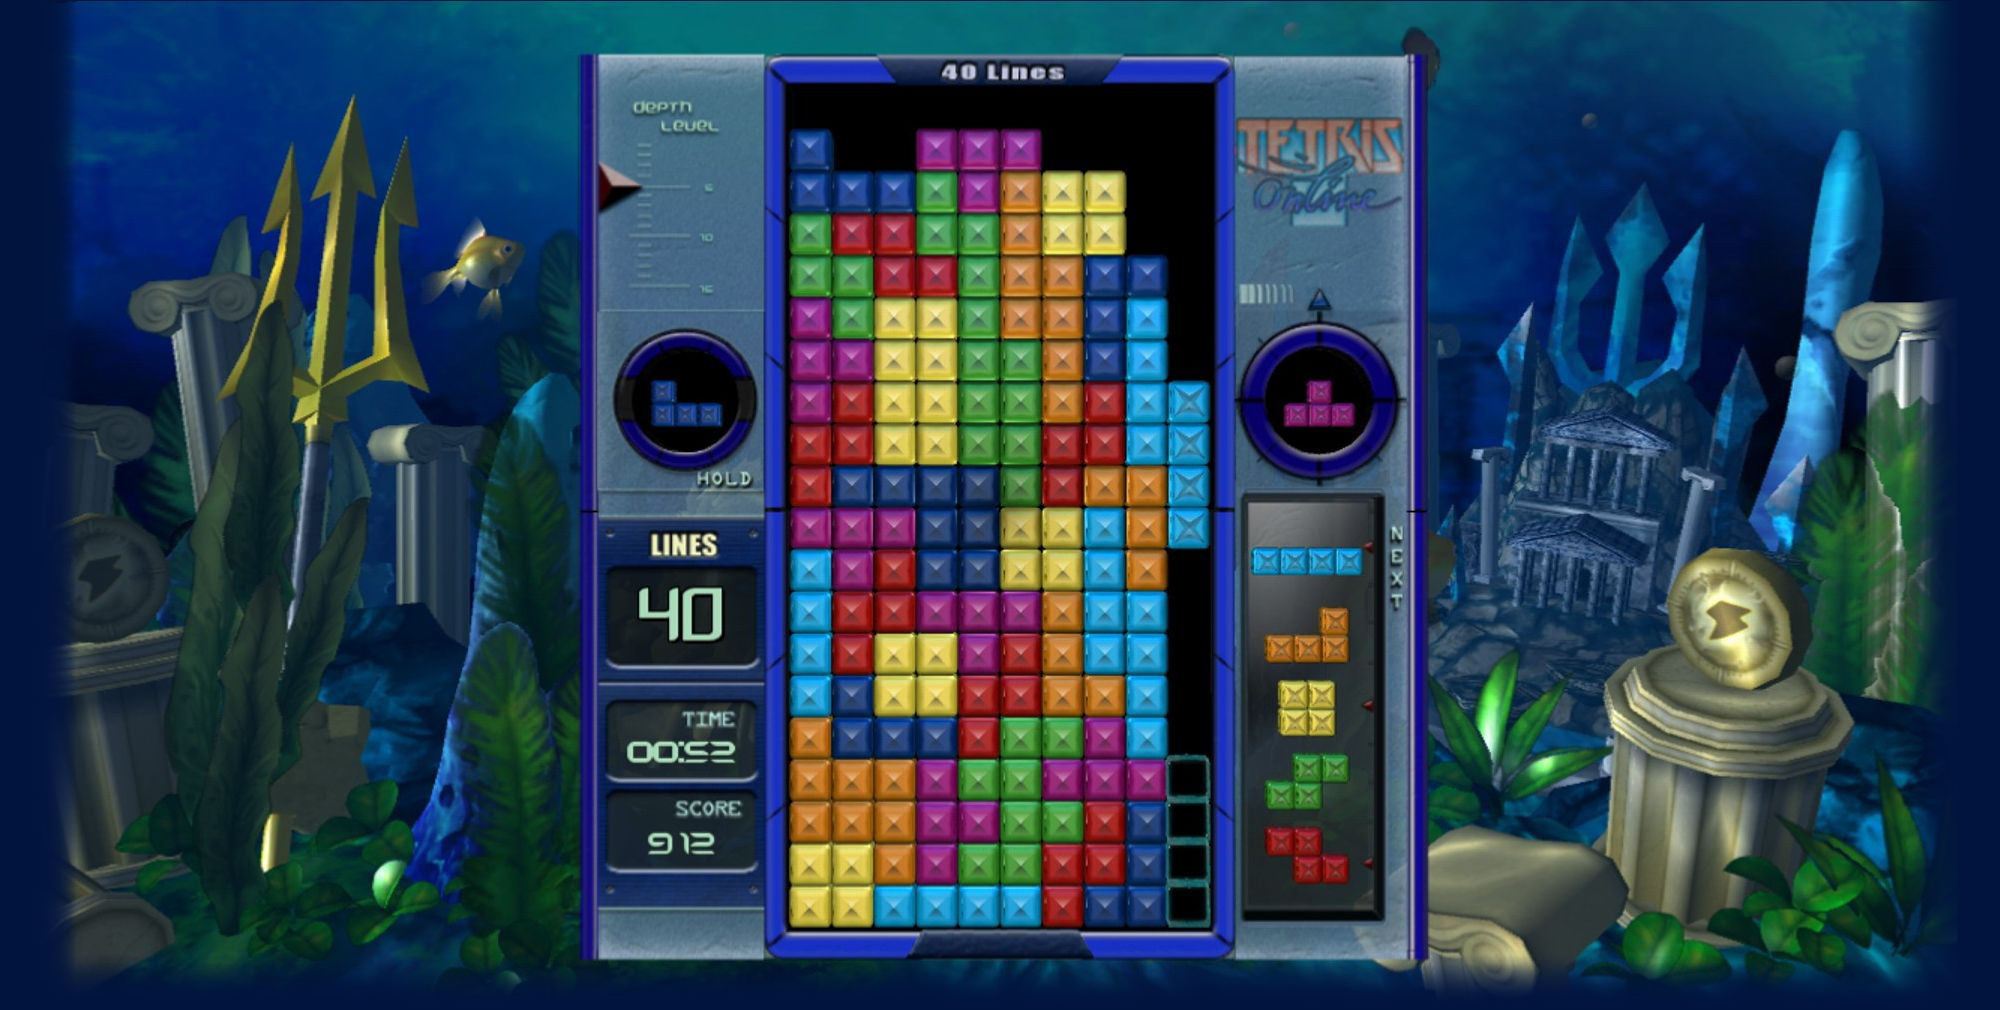 Scoring | Tetris Wiki | FANDOM powered by Wikia